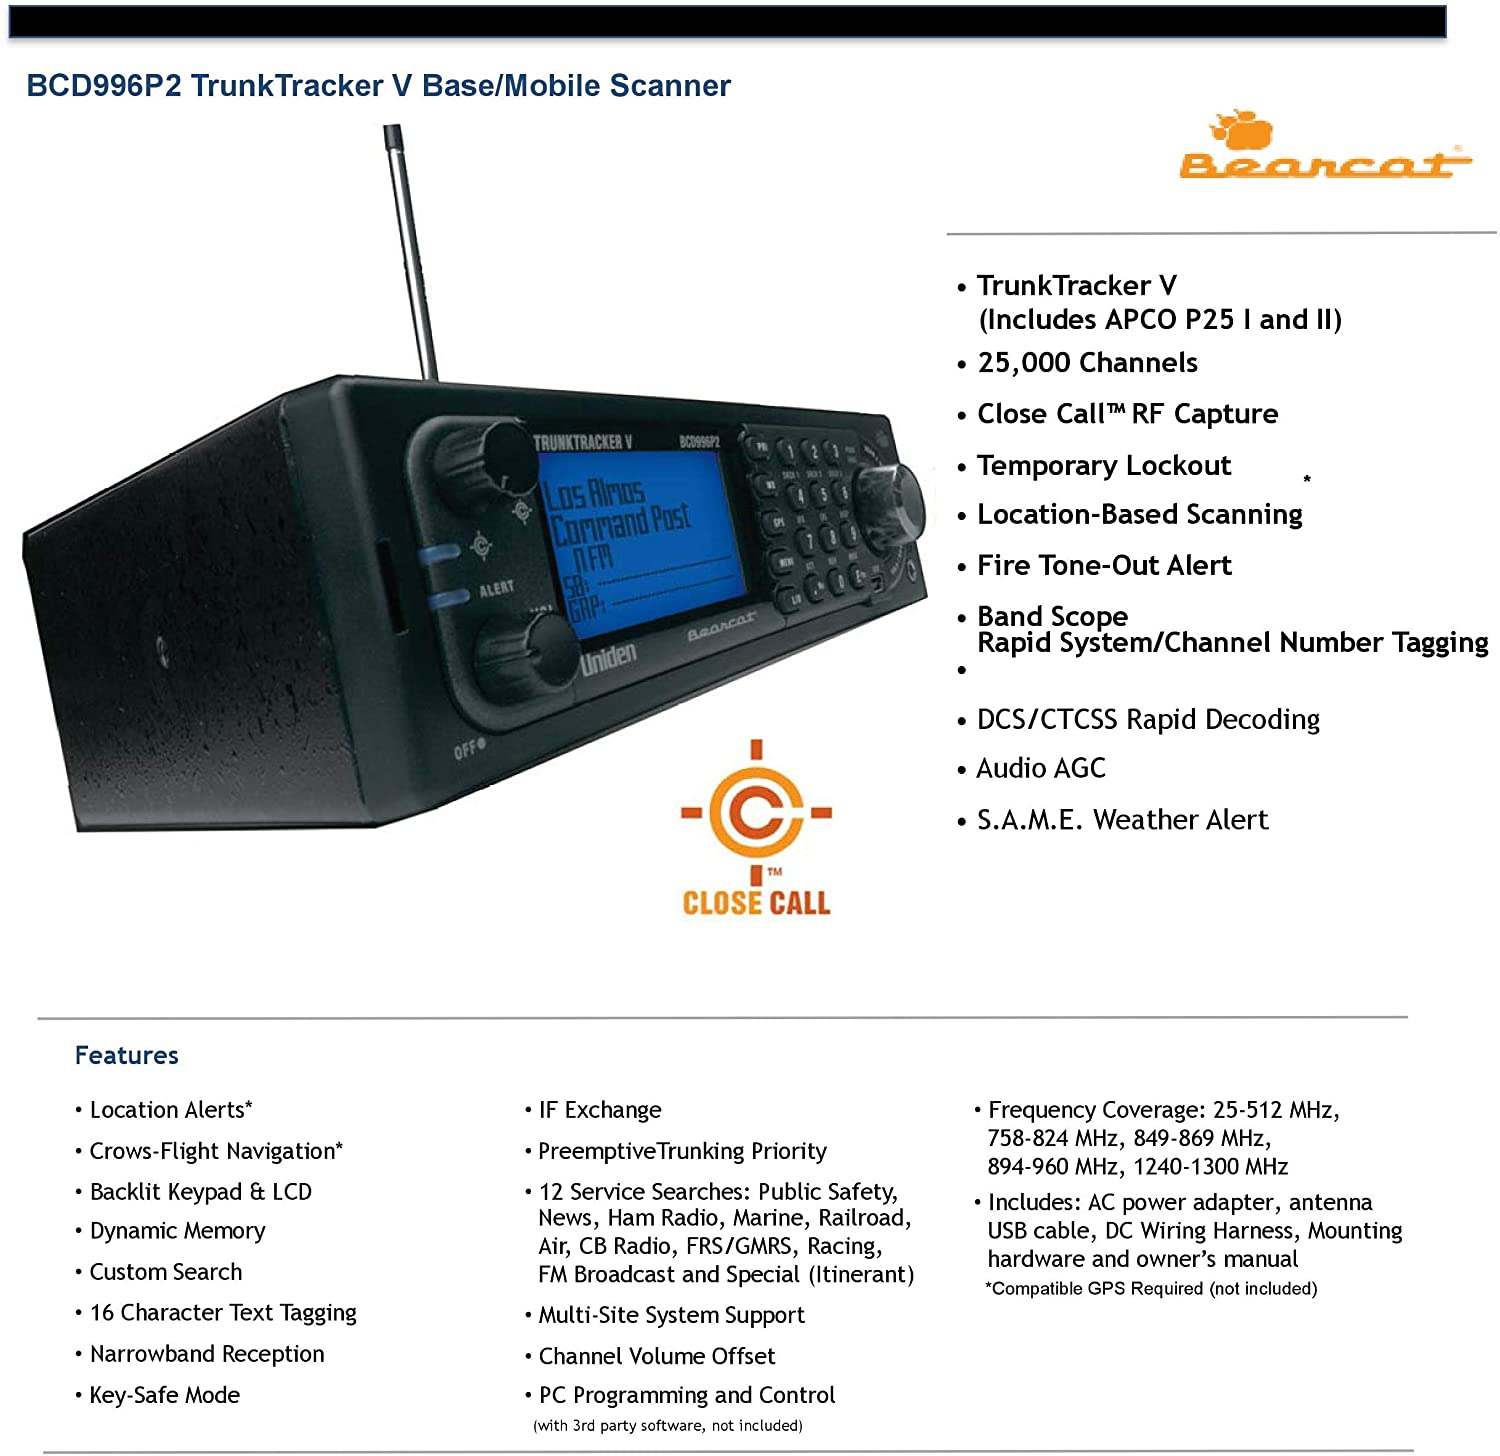 features of a Uniden BCD996P2 police scanner